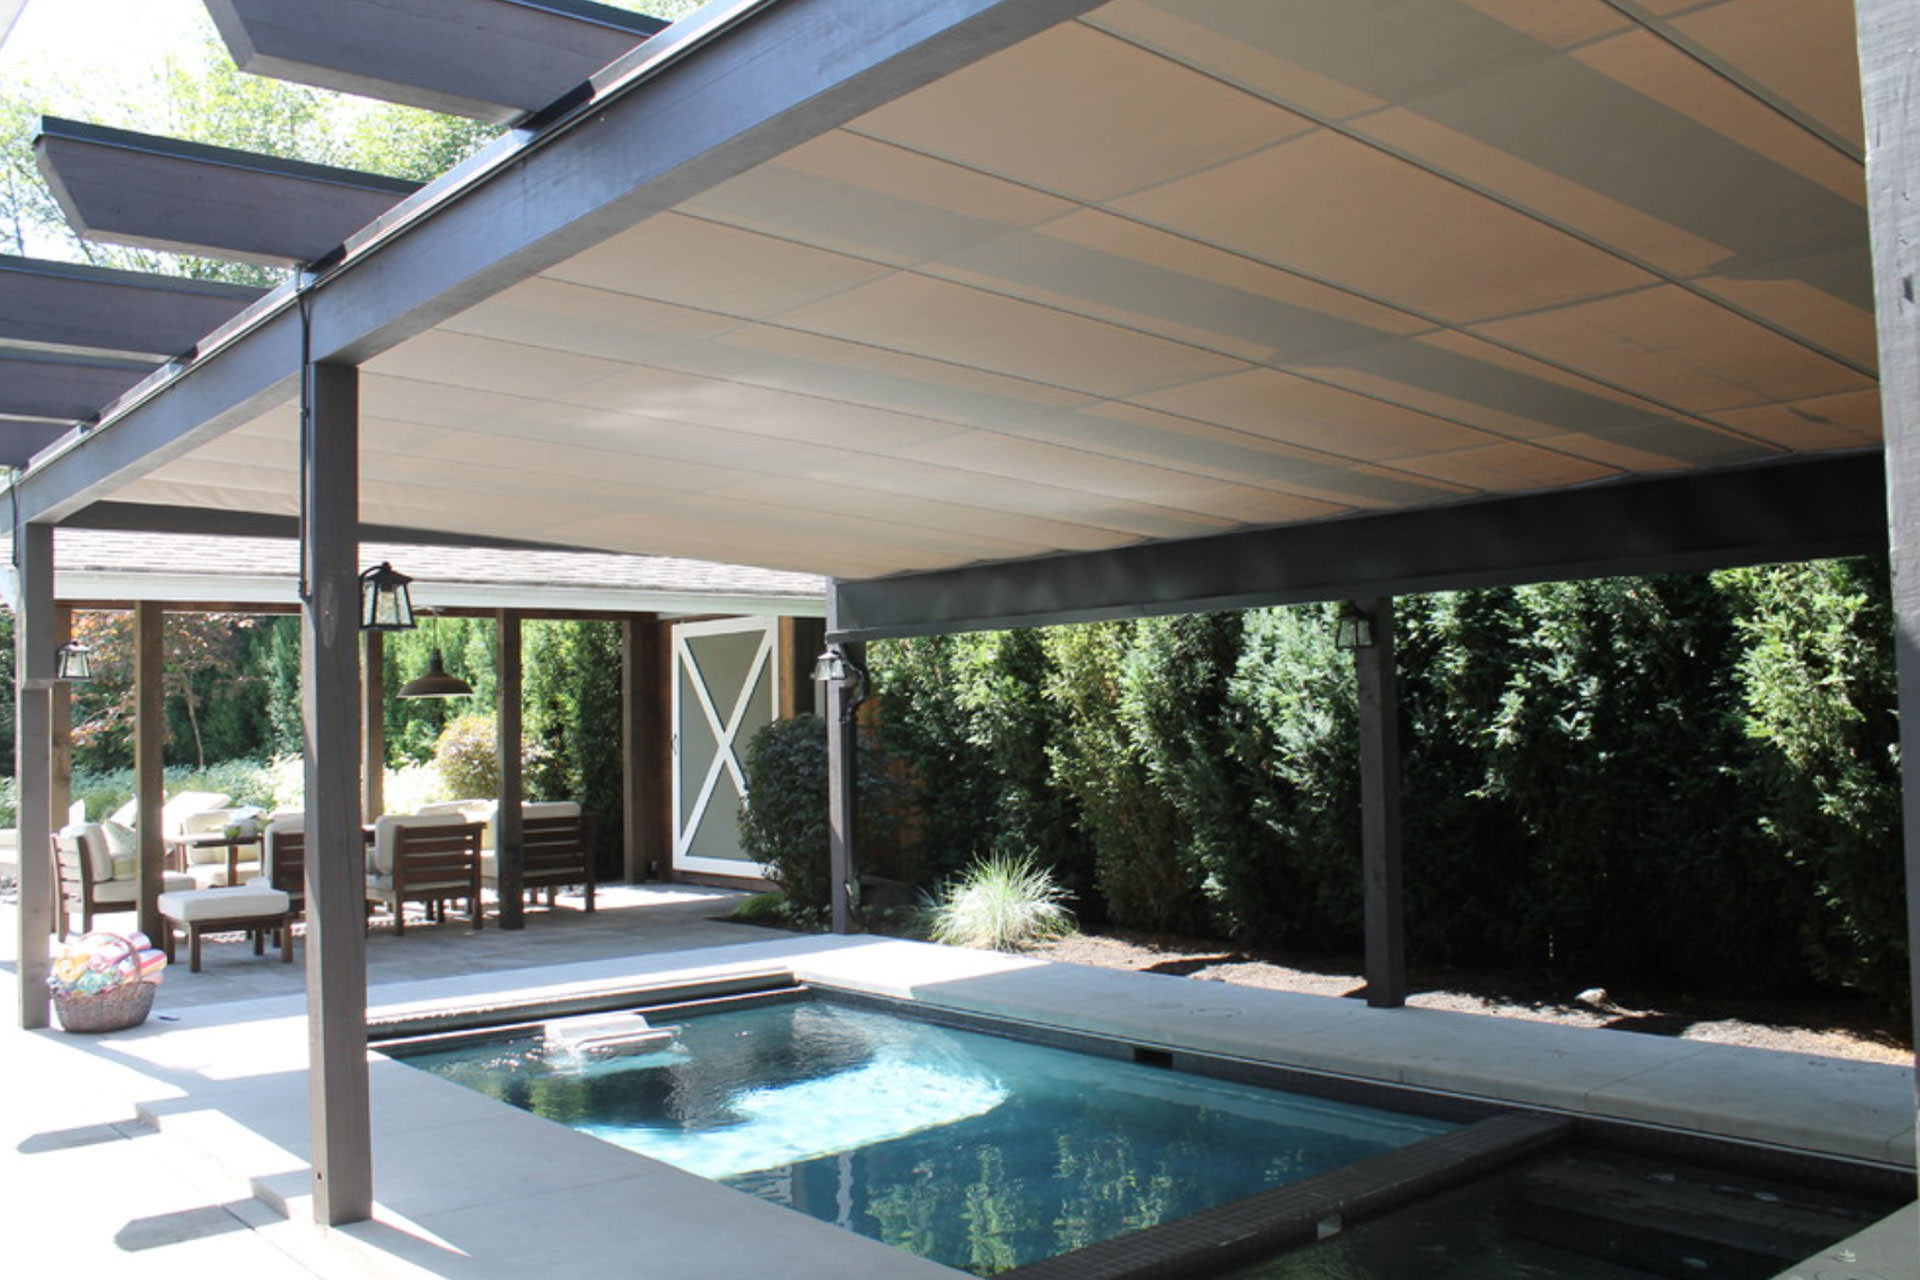 Pool Shade Ideas 8 Ways To Cover Your Swimming Pool